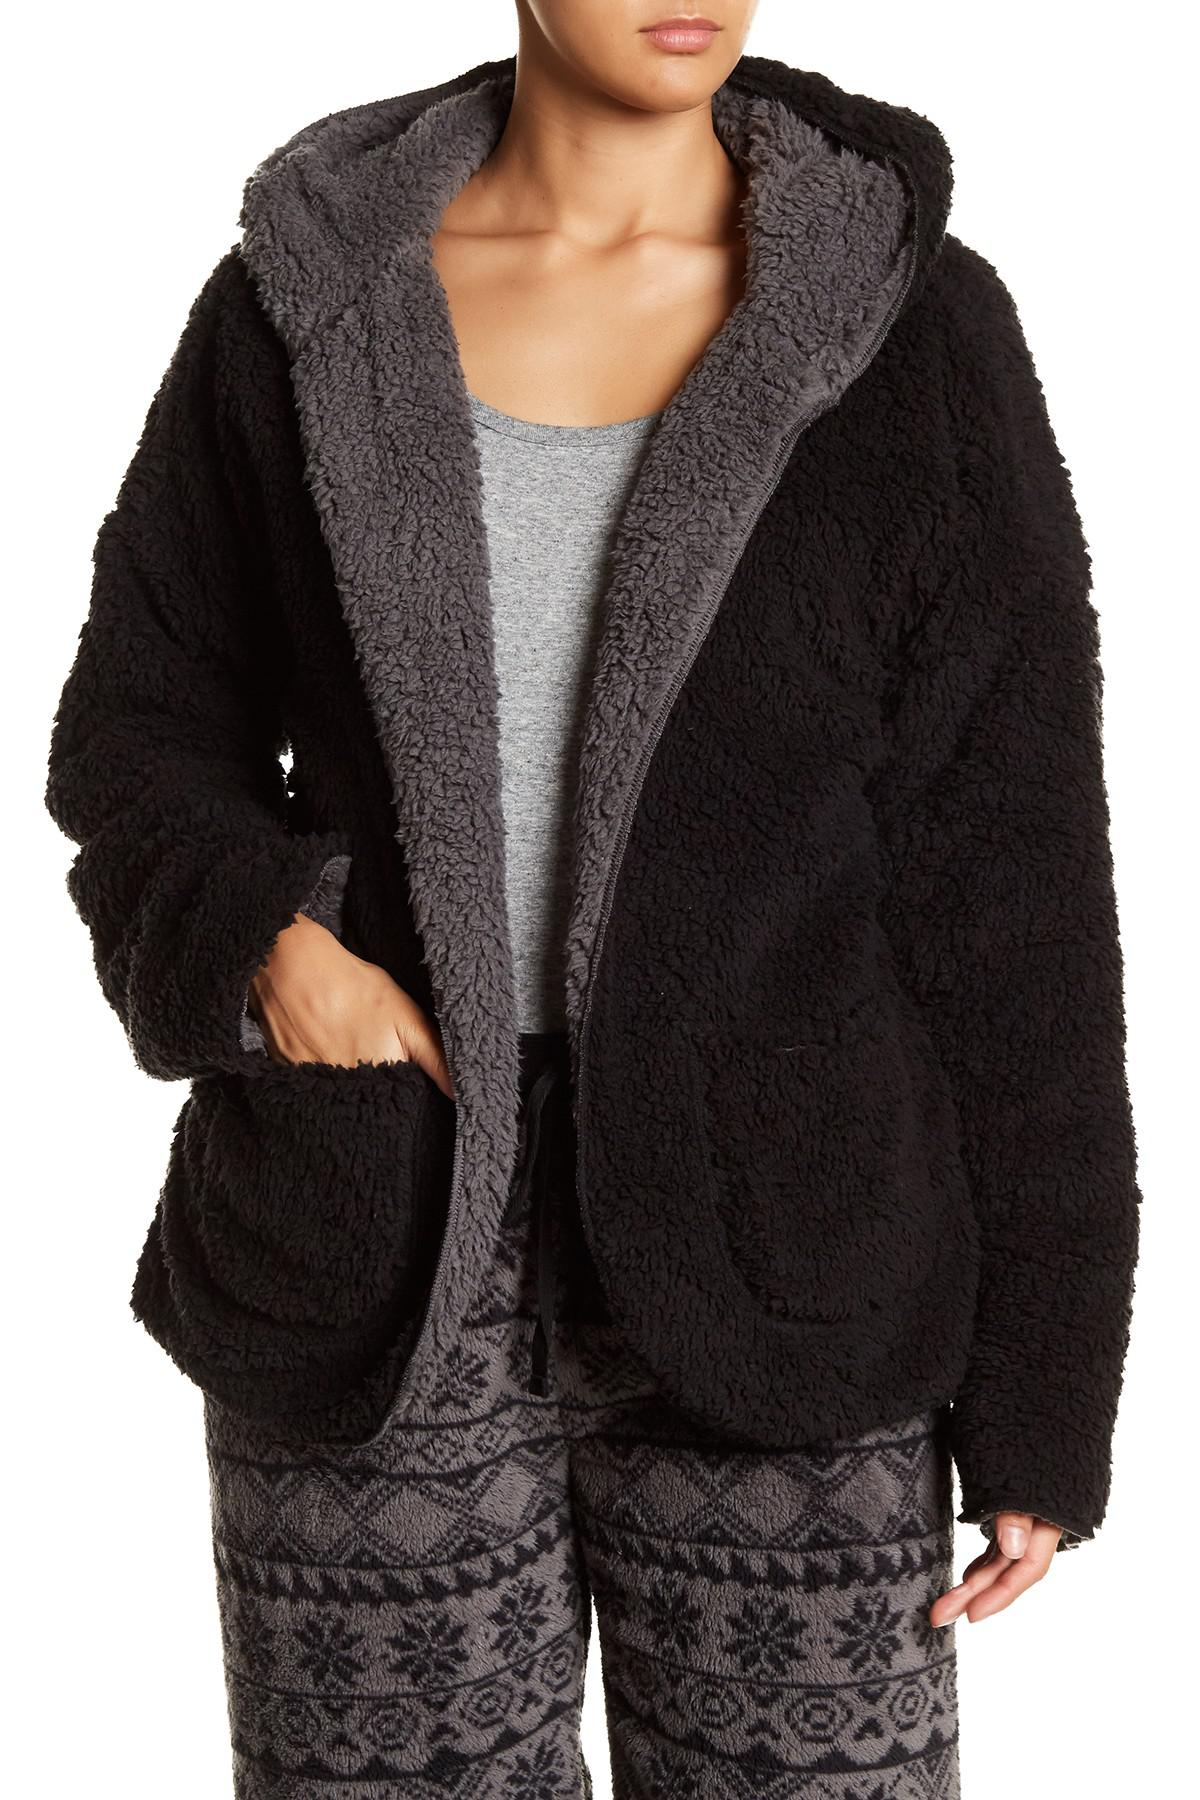 Pj salvage Open Fleece Cardigan in Black | Lyst